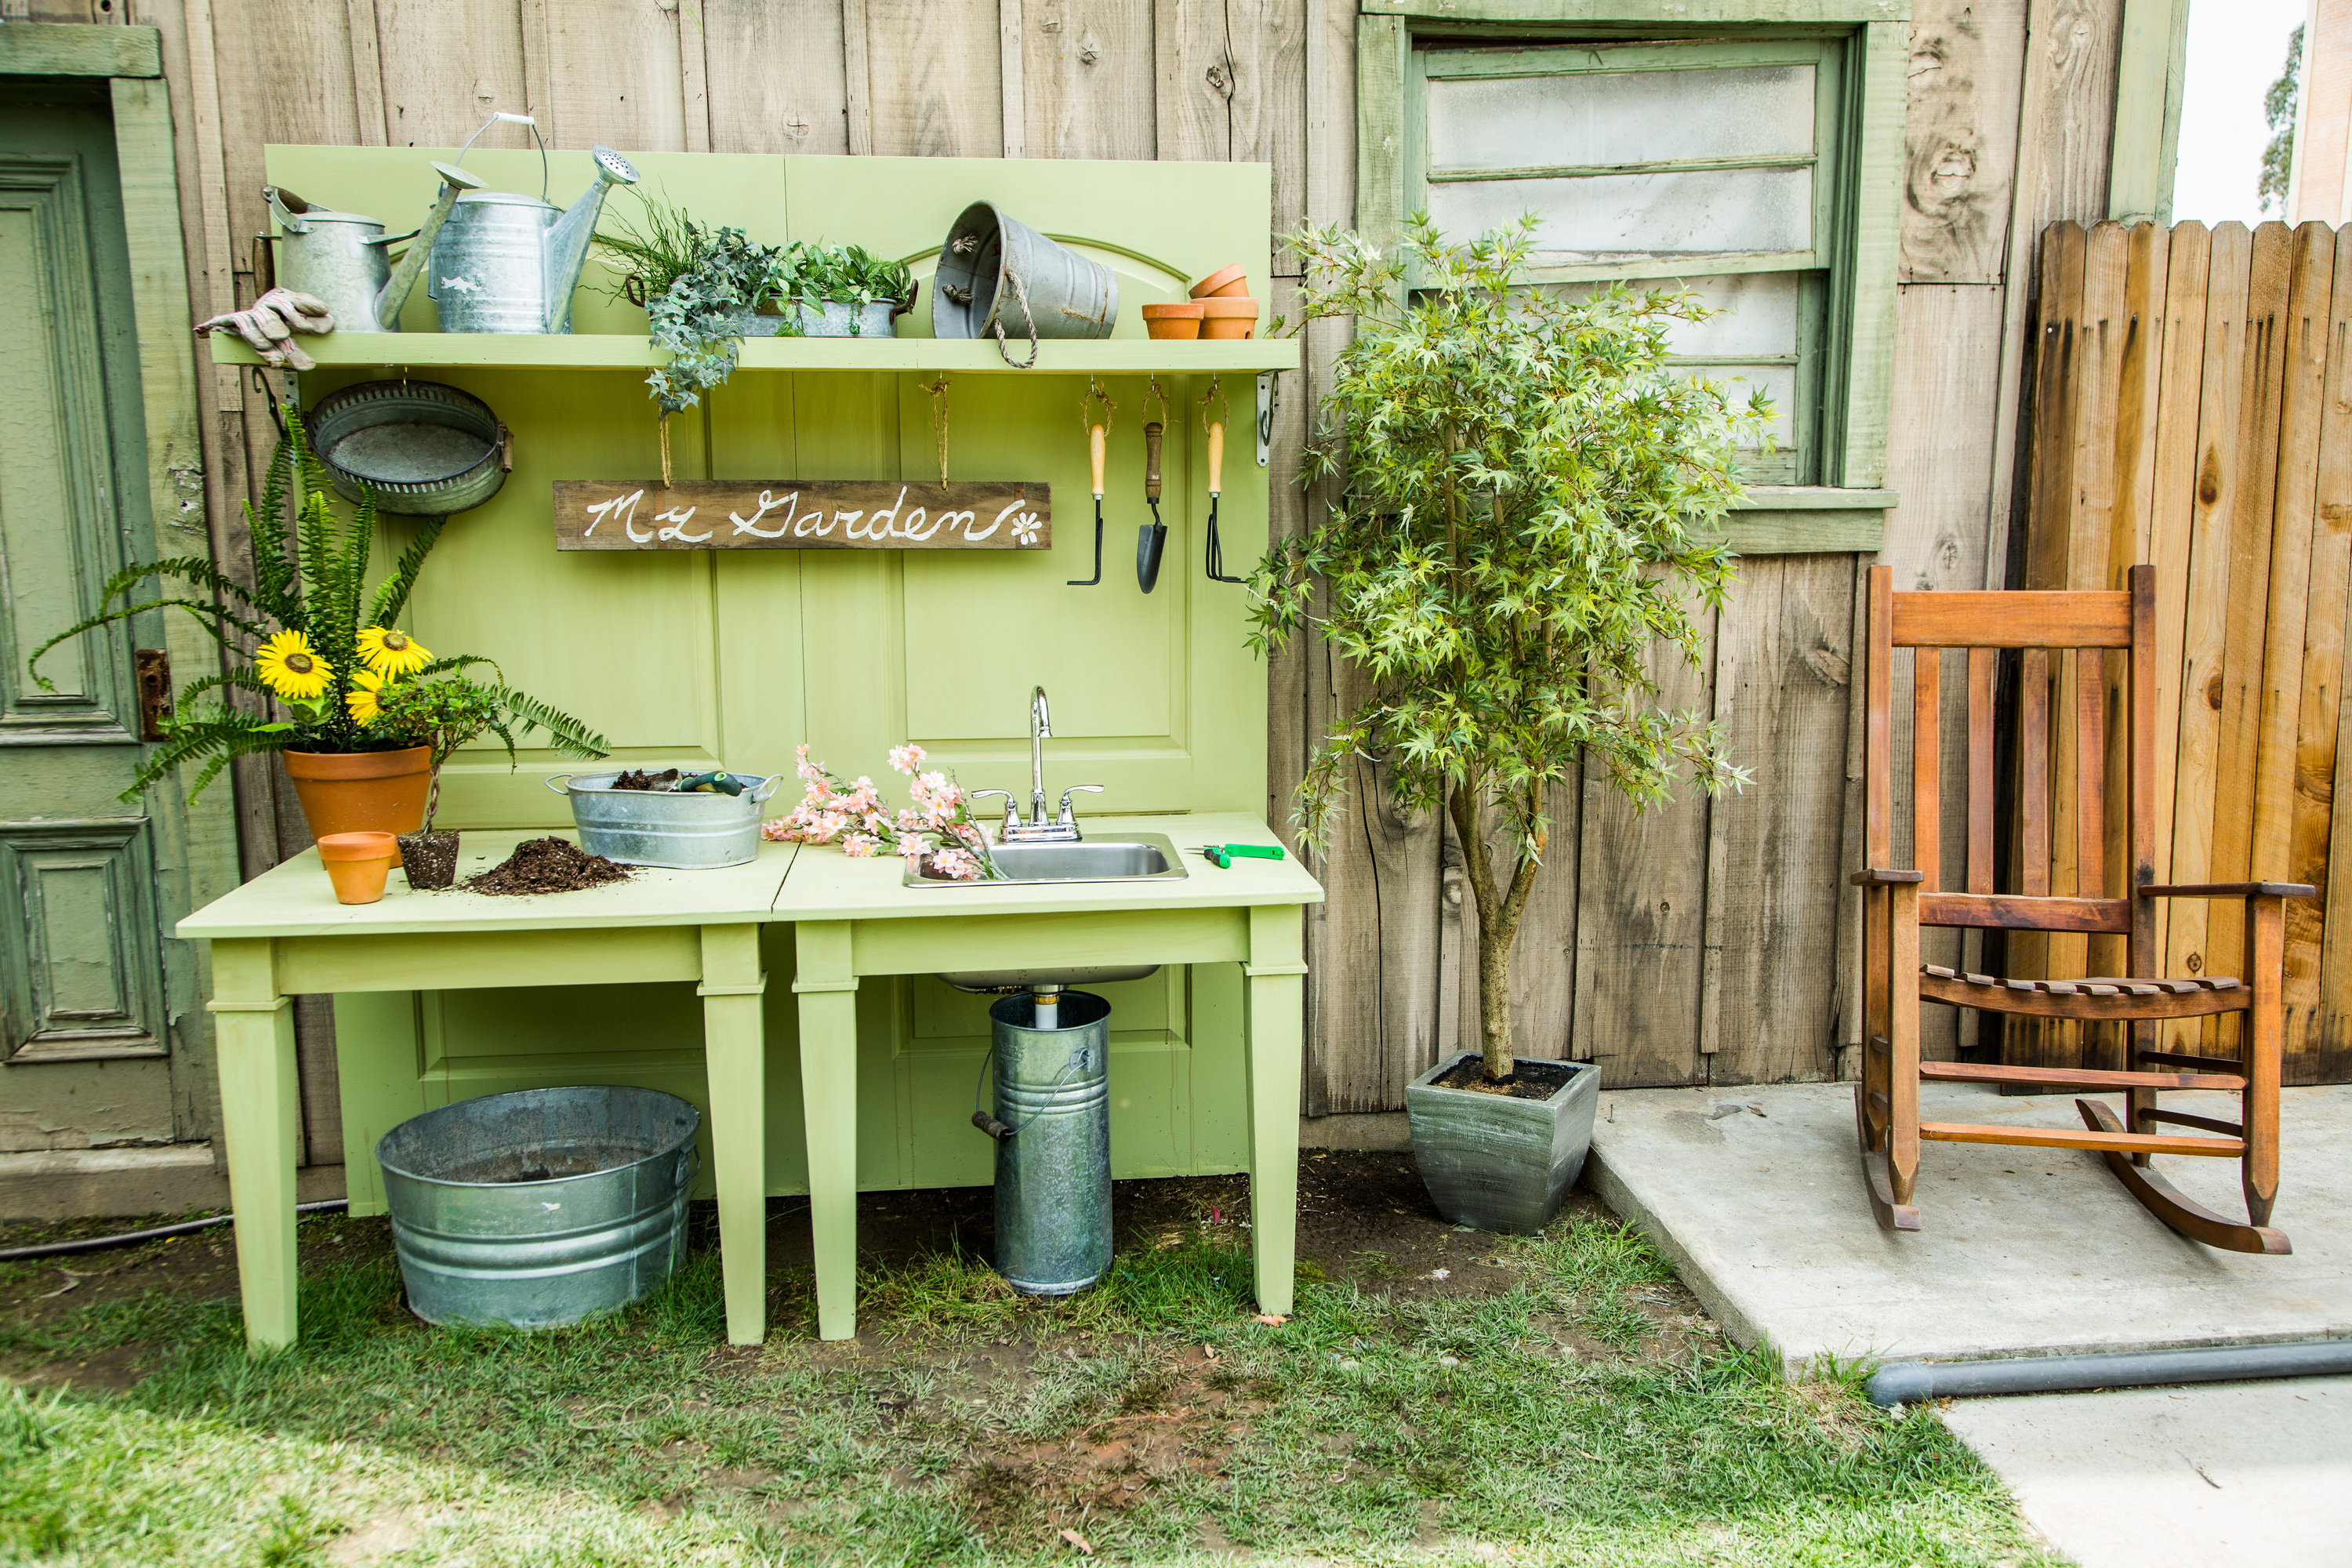 fantastic ceaf with potting potti on woodworks dream wind window rustic garden pb bench sink table